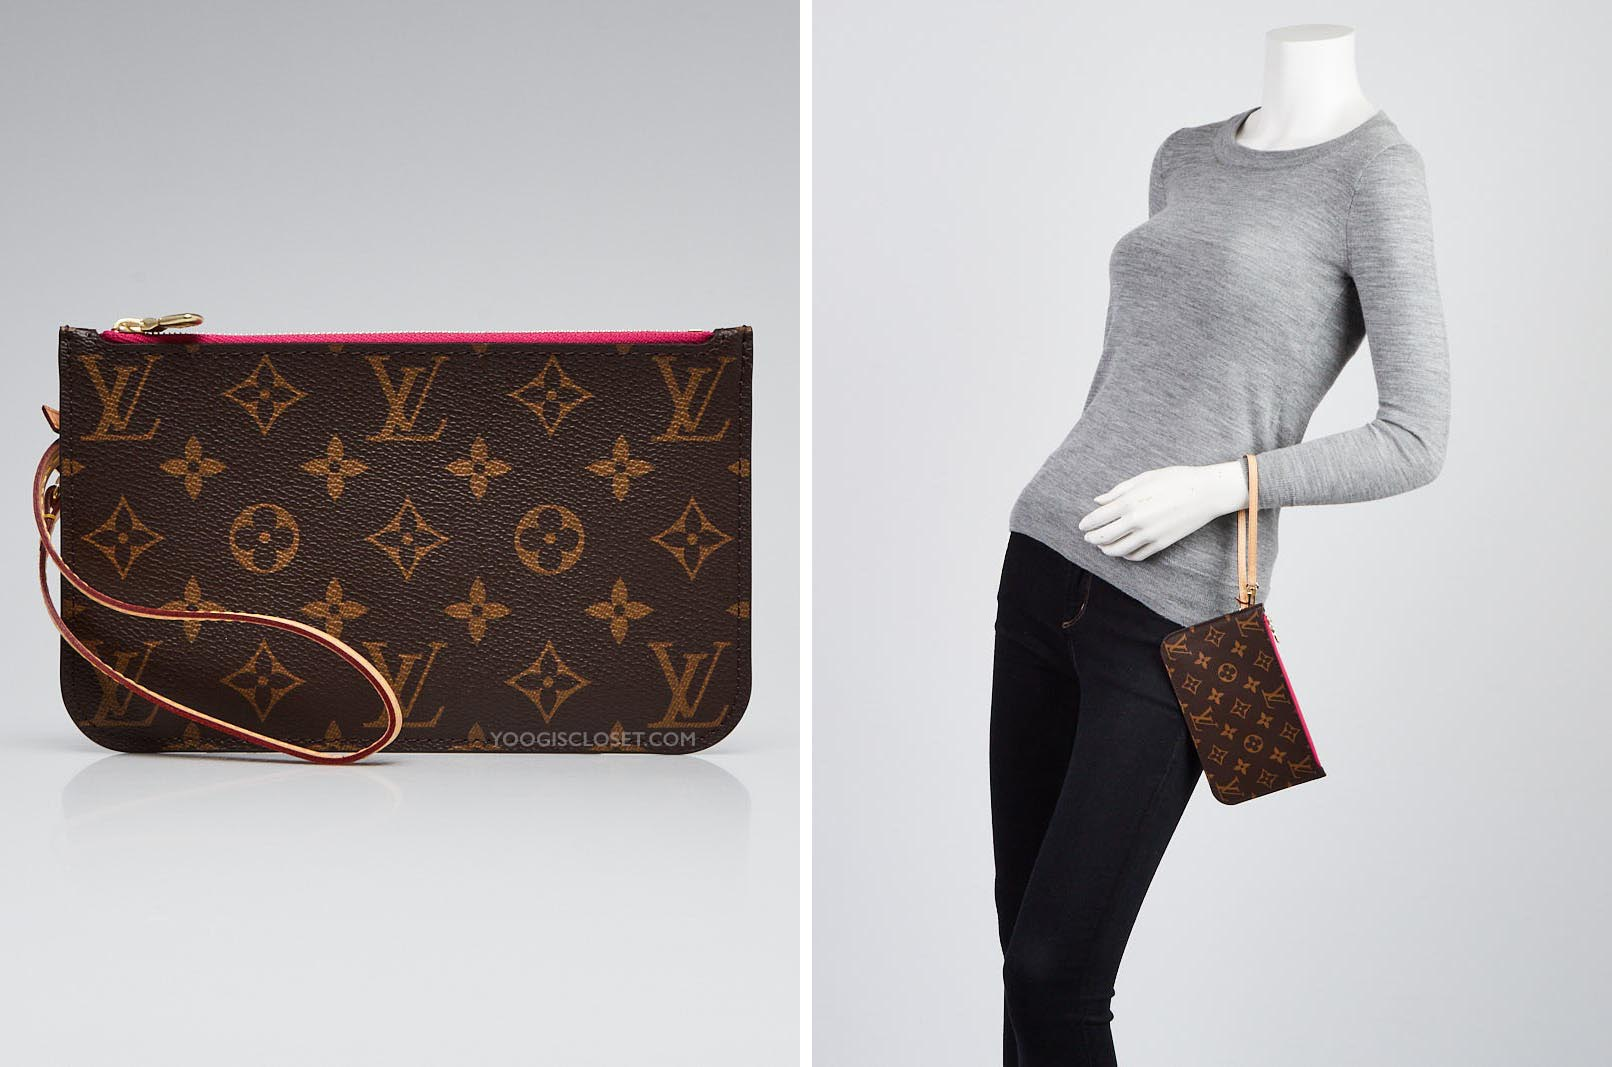 7a029137ba69 Neverfull Clutch Size Difference Guide - Yoogi s Closet Blog